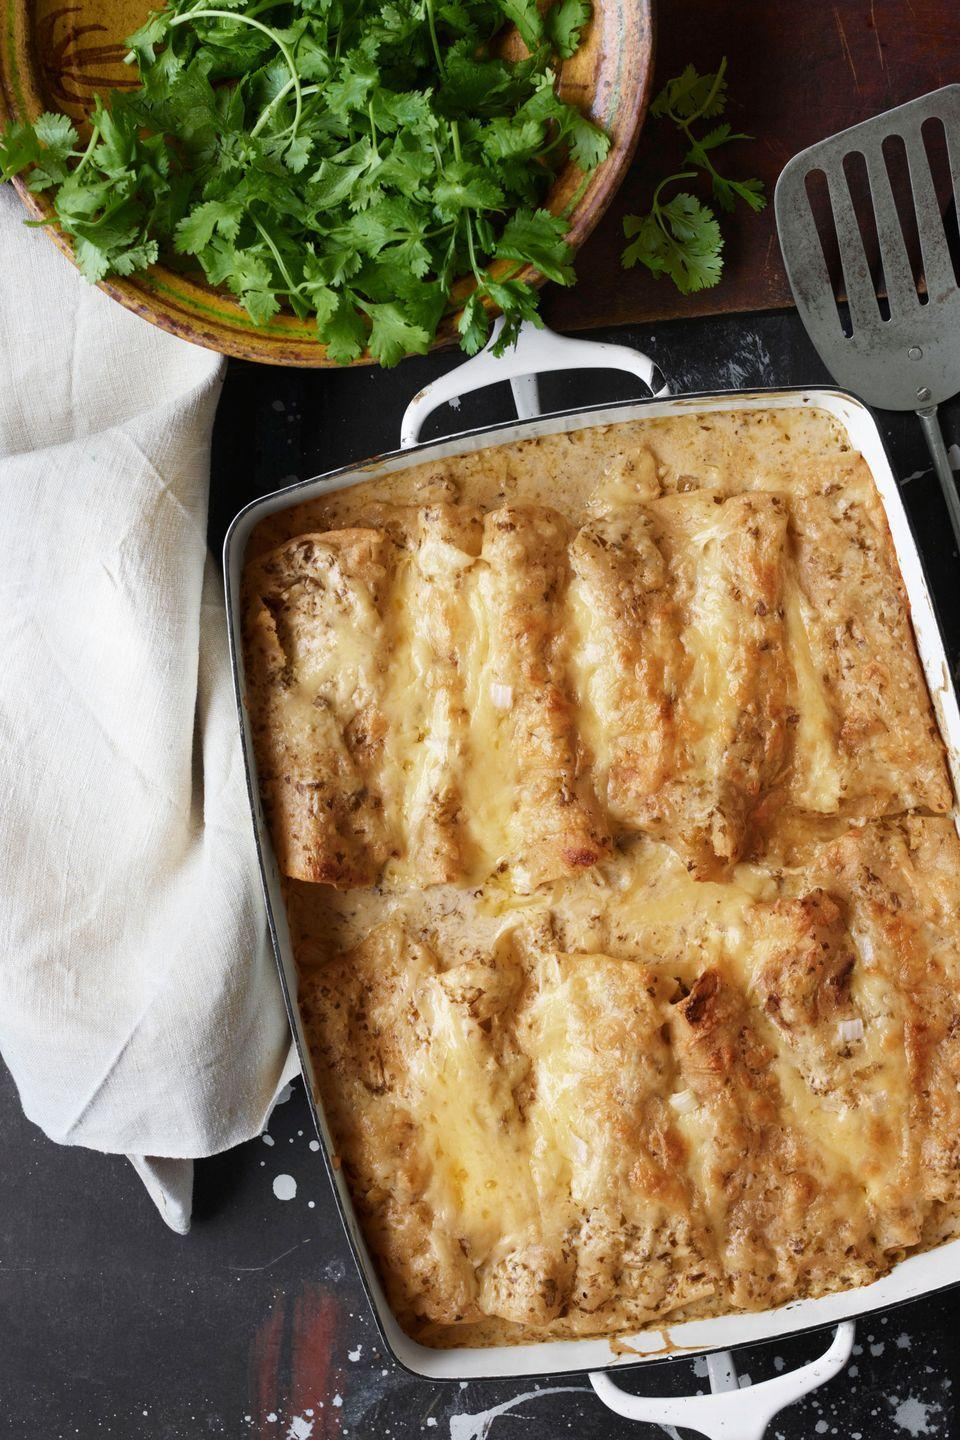 "<p>Take a gander at these cheesy chicken enchiladas. ""To give a kick to my sour cream sauce,"" the author says, ""I add serrano chiles and tomatillos.""</p><p><strong><a href=""https://www.countryliving.com/food-drinks/recipes/a3779/sour-cream-chicken-enchiladas-recipe-clx0312/"" rel=""nofollow noopener"" target=""_blank"" data-ylk=""slk:Get the recipe."" class=""link rapid-noclick-resp"">Get the recipe.</a></strong></p>"